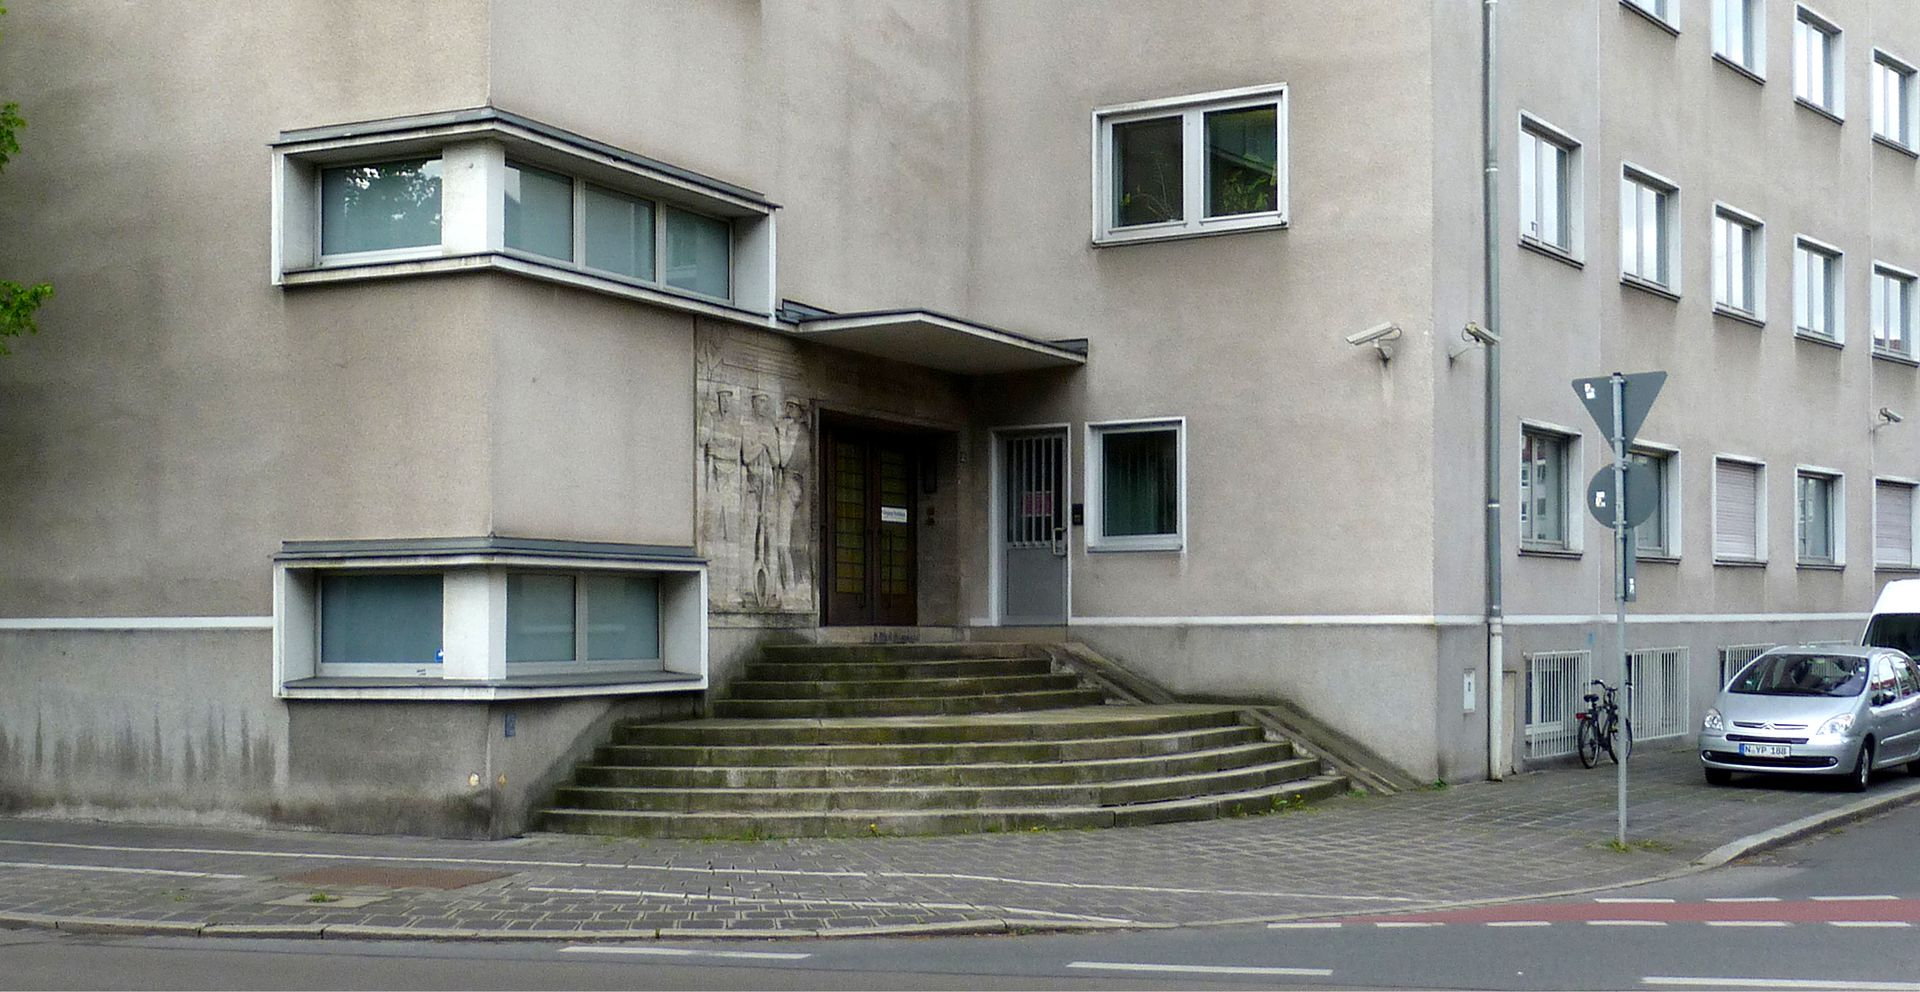 Administration building of the Franconian electricity supplier Entrance with staircase